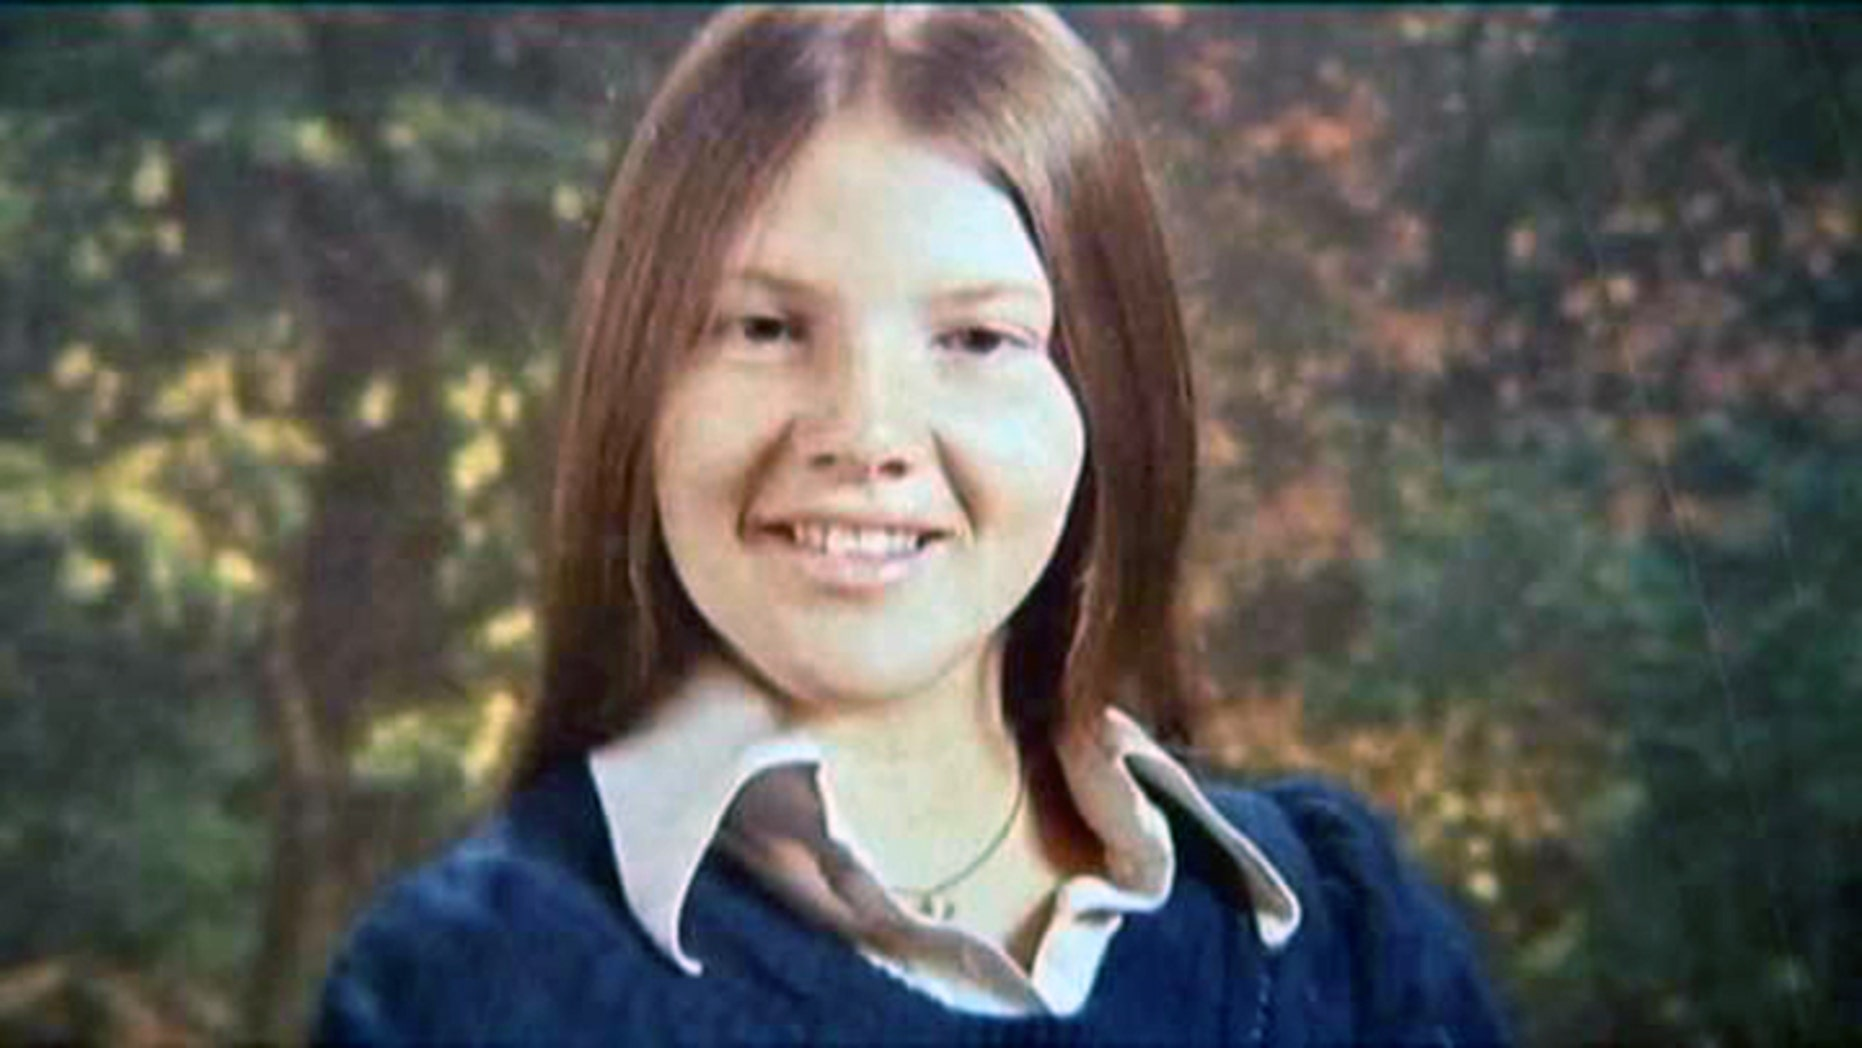 Theresa Corley was just 19 when she was raped and strangled in Bellingham.